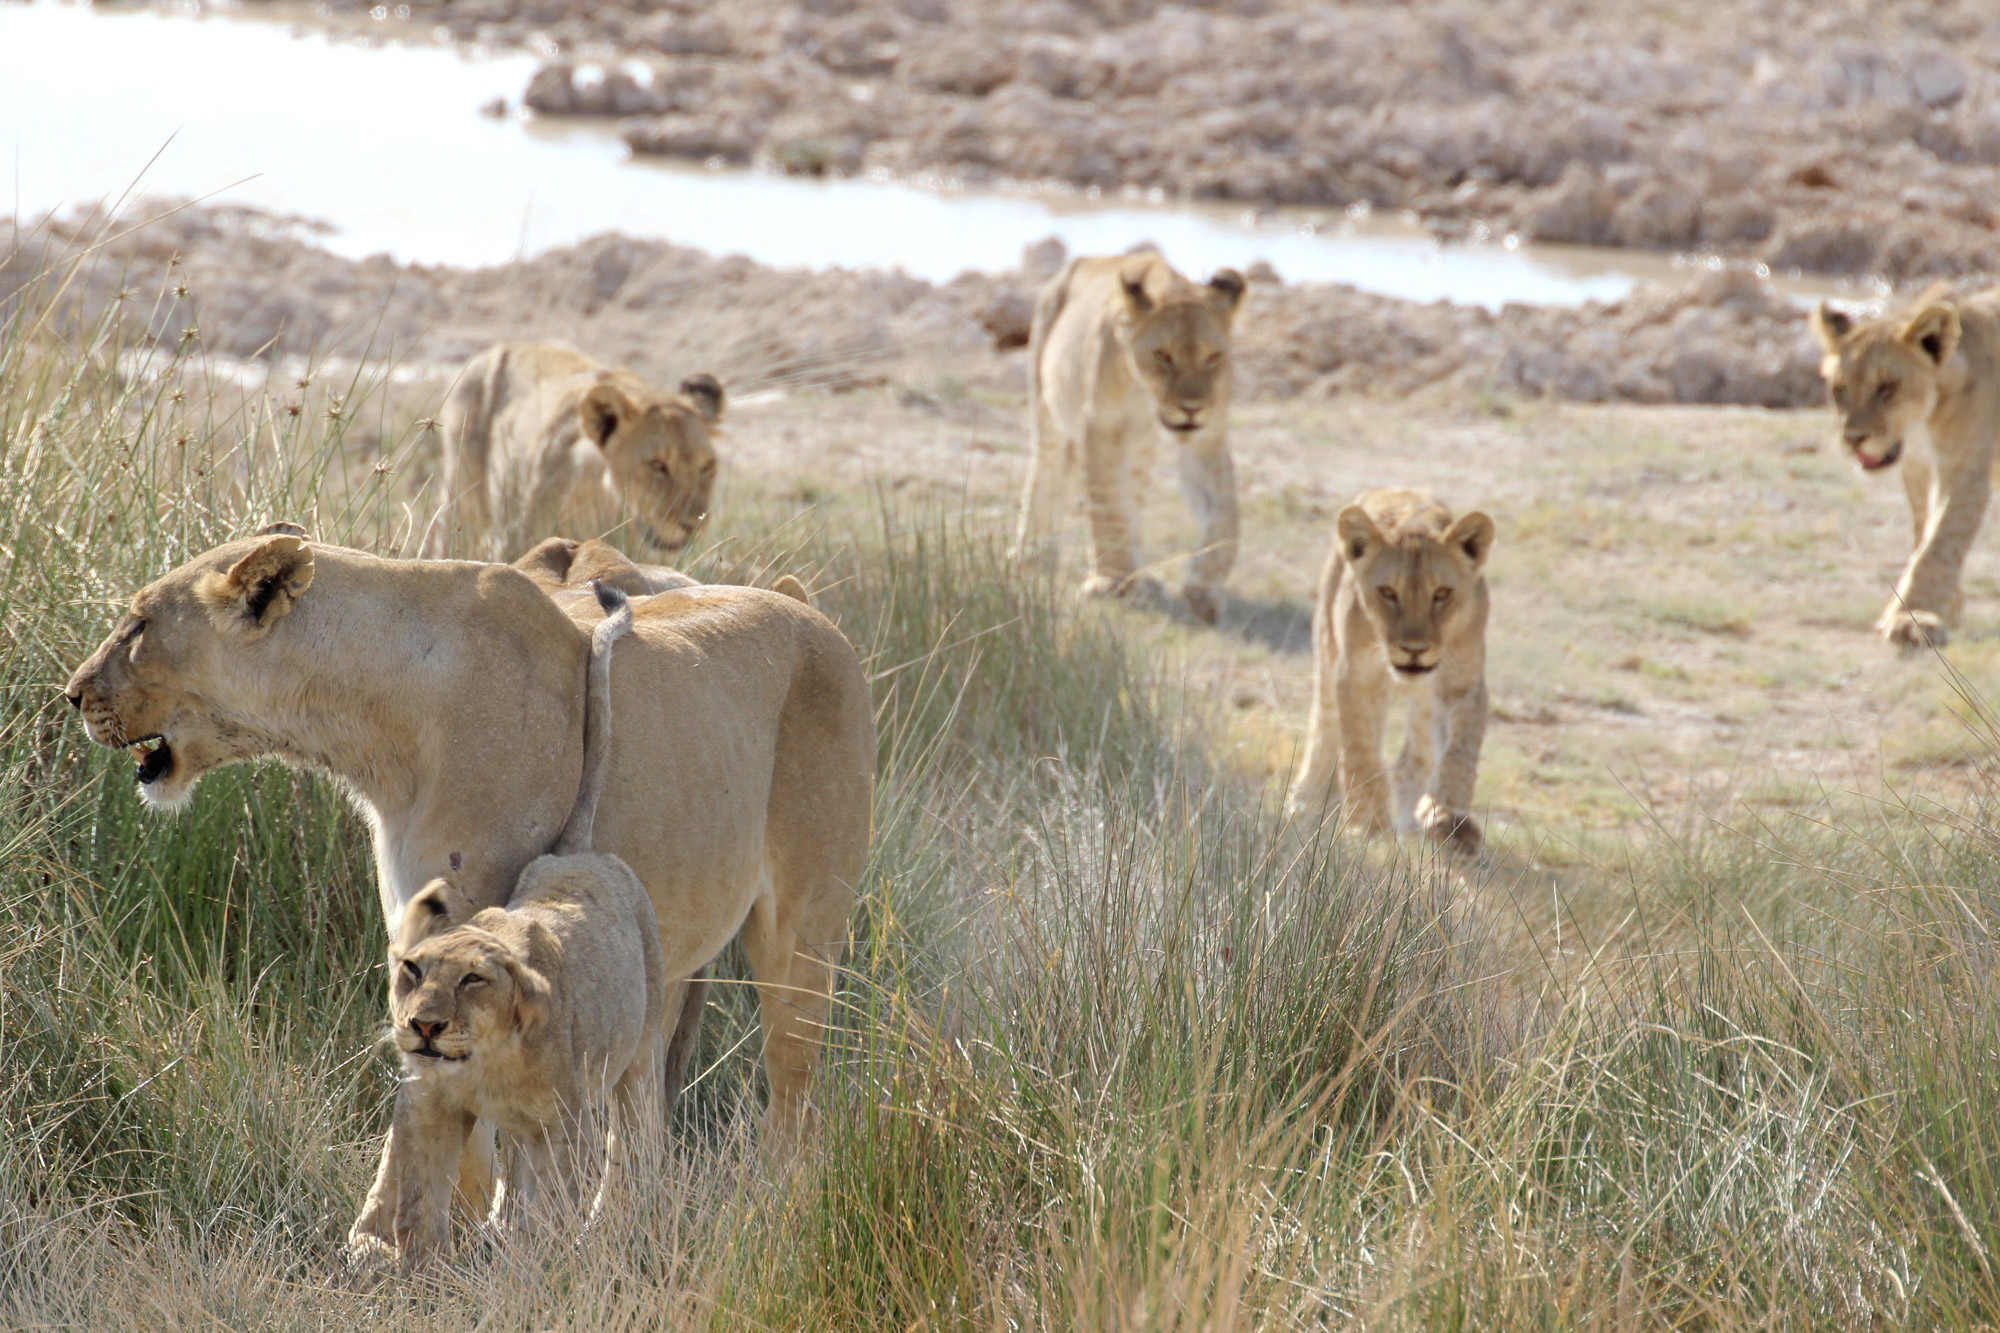 A lioness passes with her cubs in tow ©Janine Avery